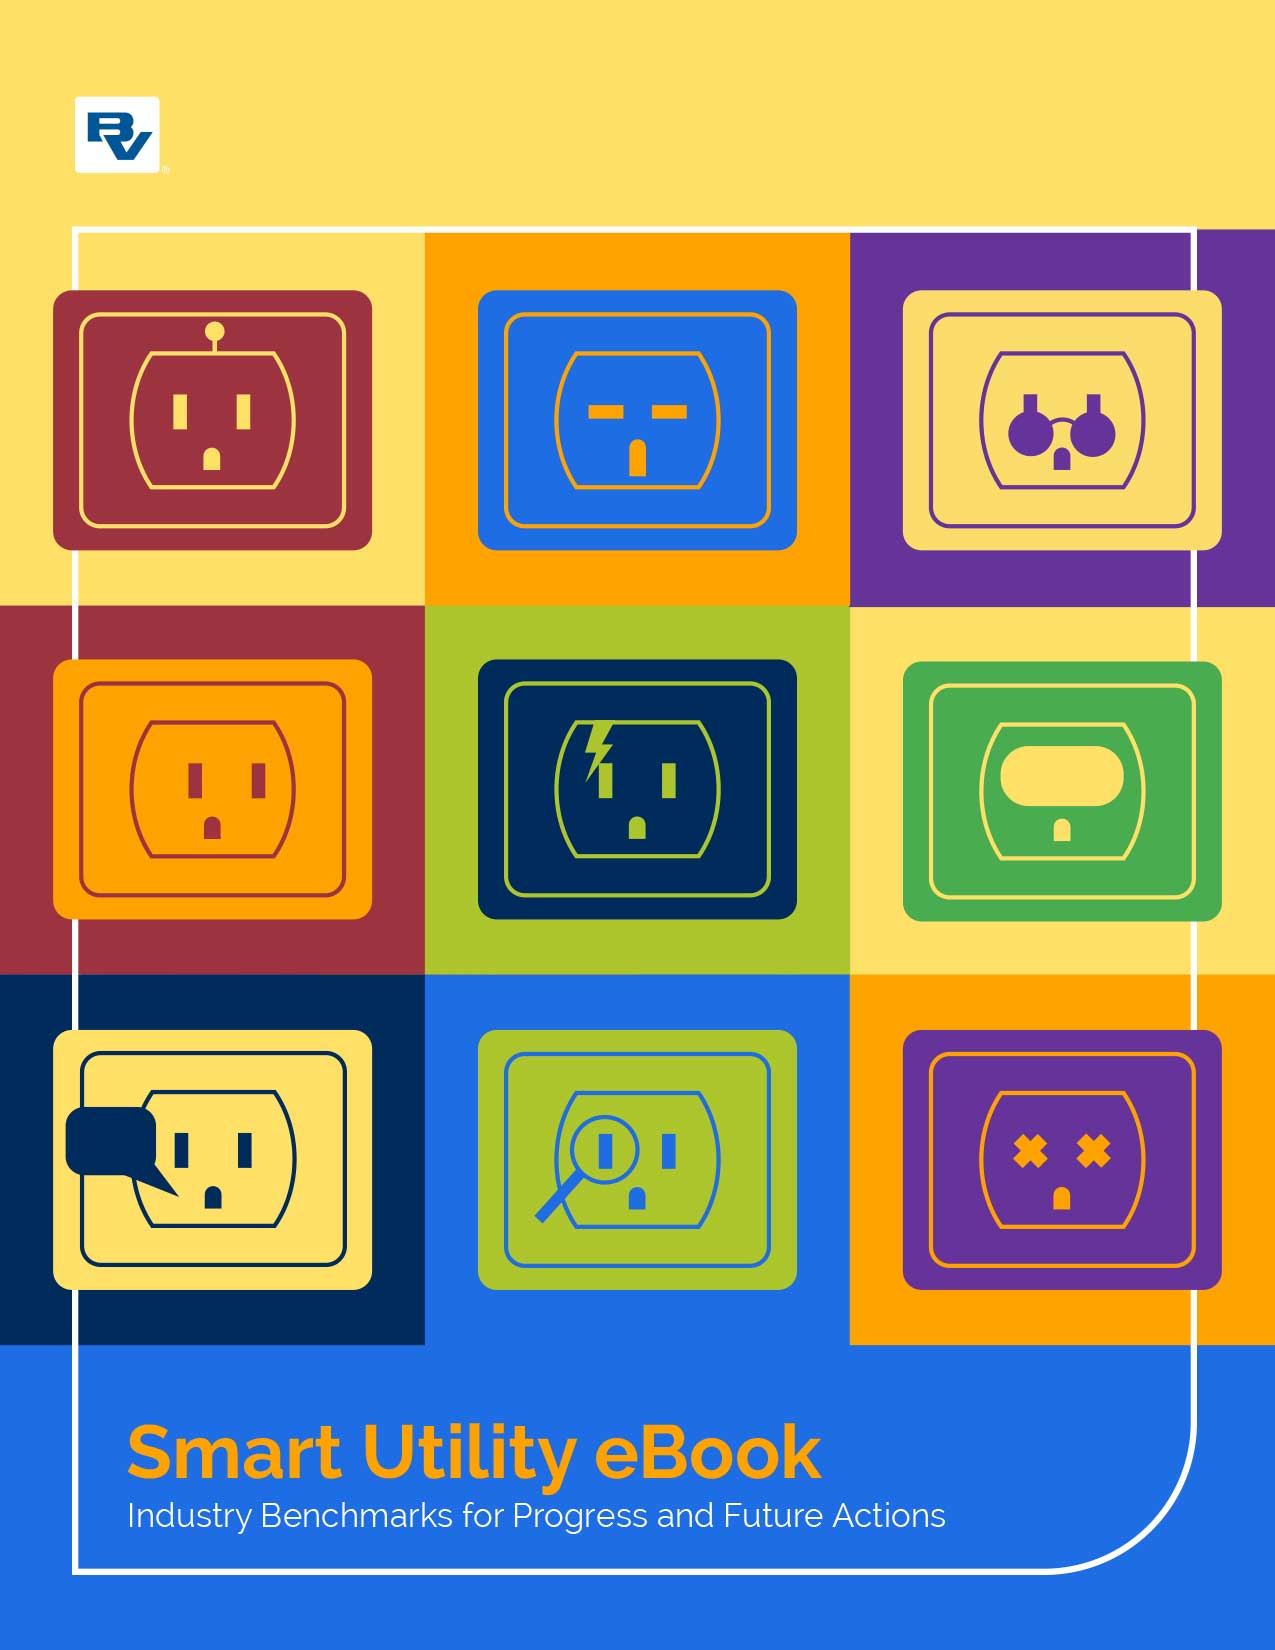 Smart Utility eBook cover image